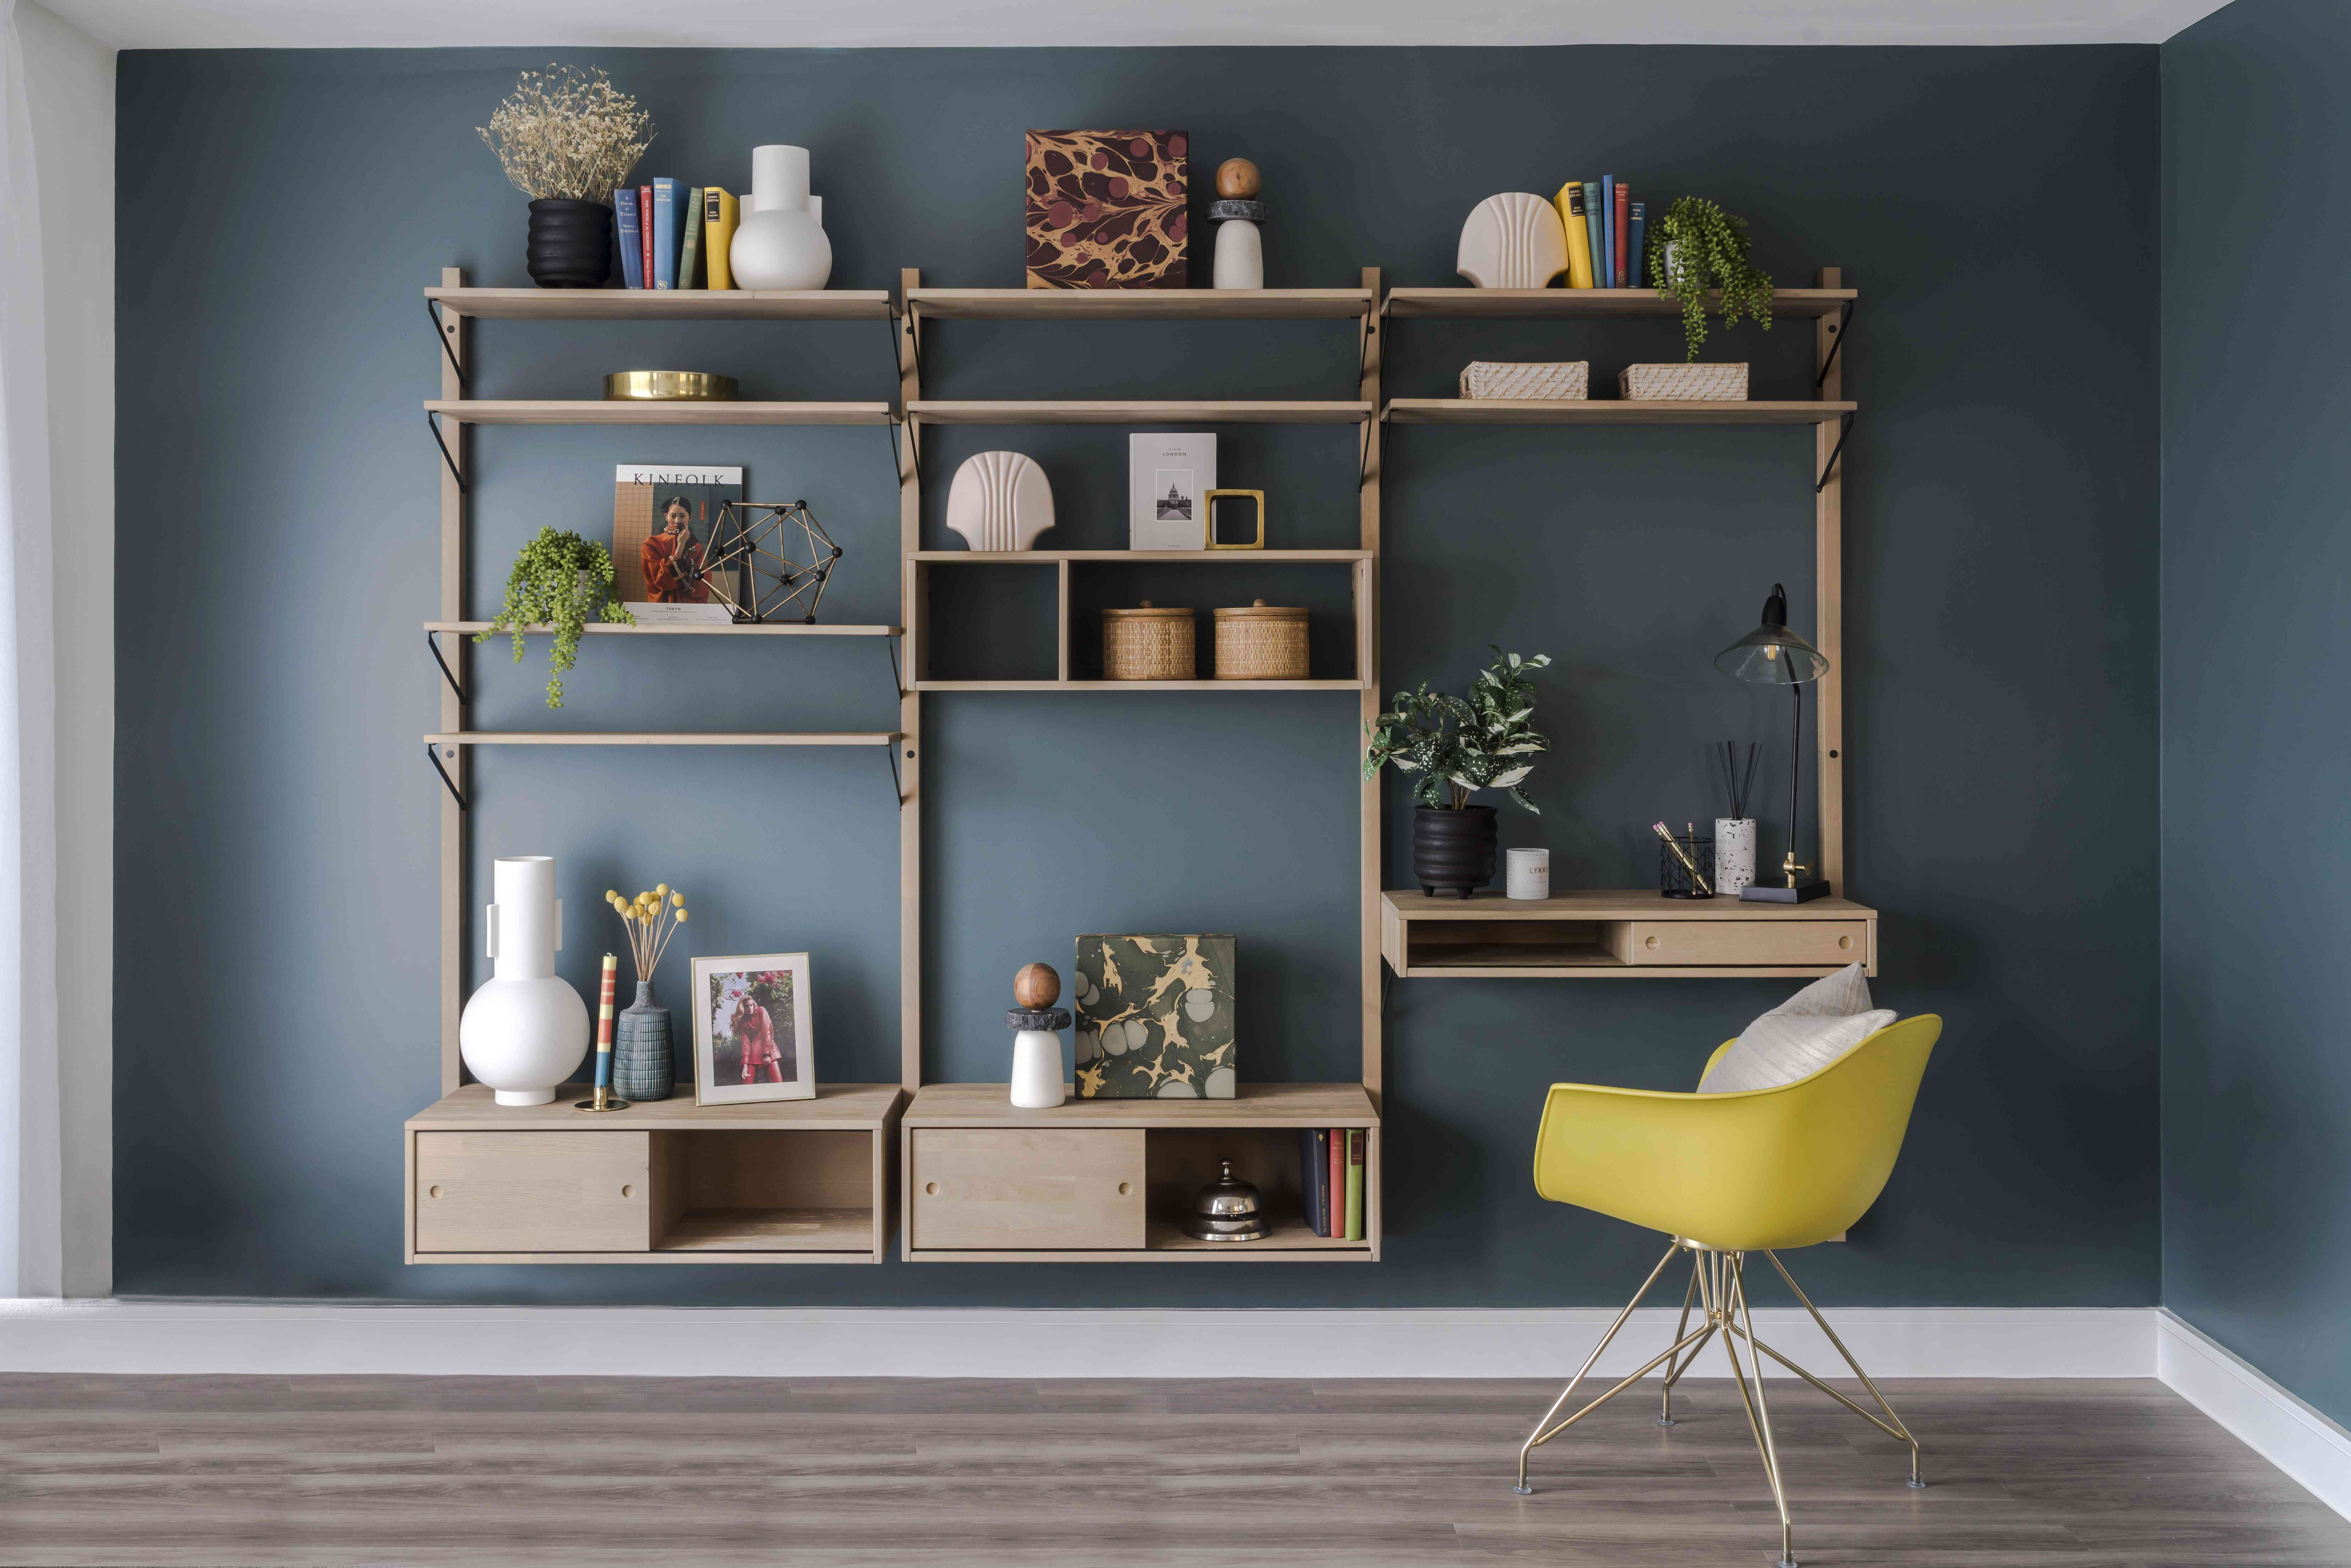 styled shelving follows the triangle rule